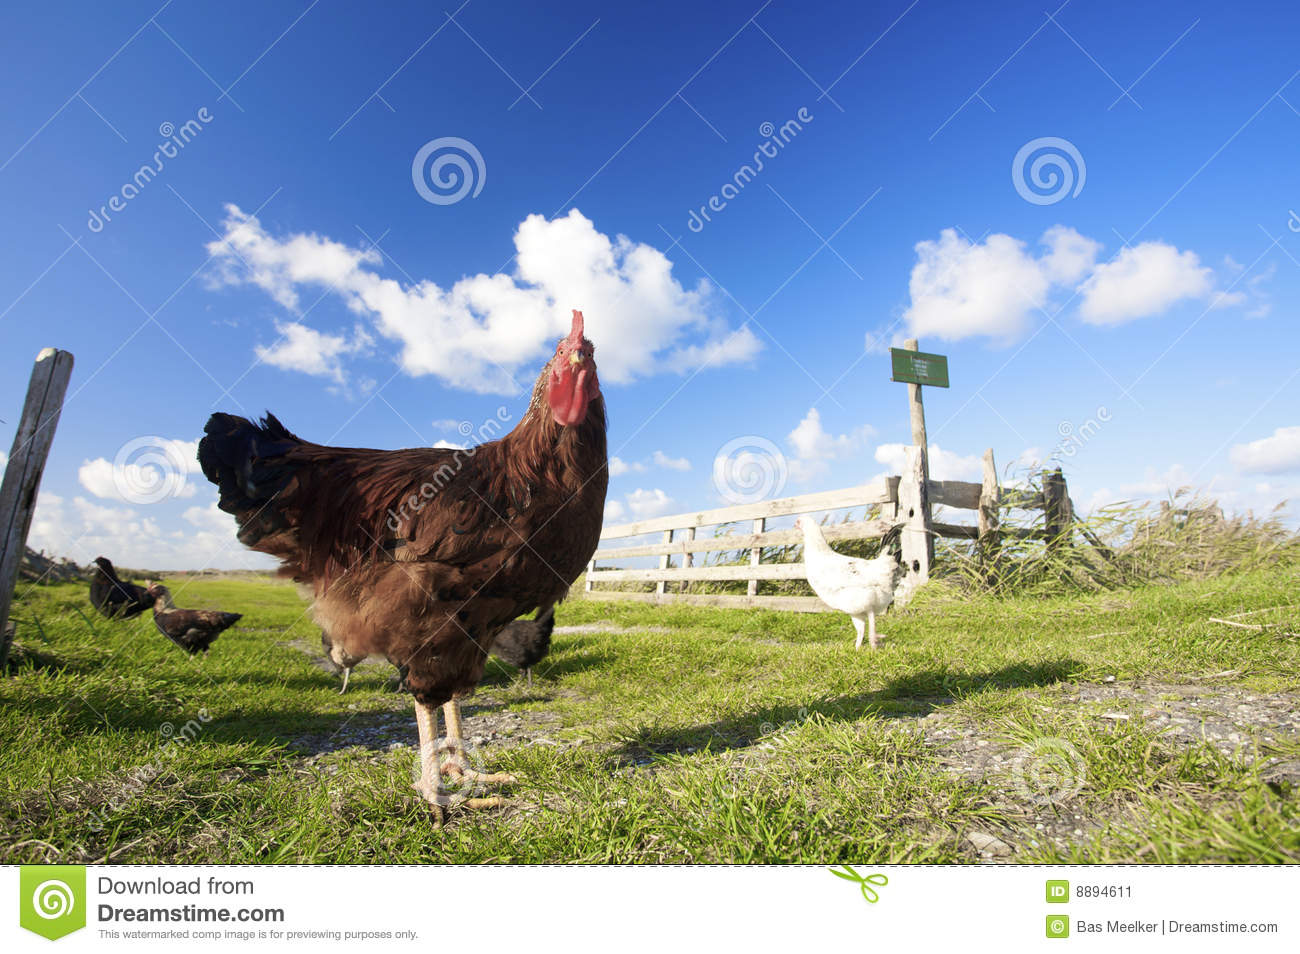 Chickens on a farm with a blue sky